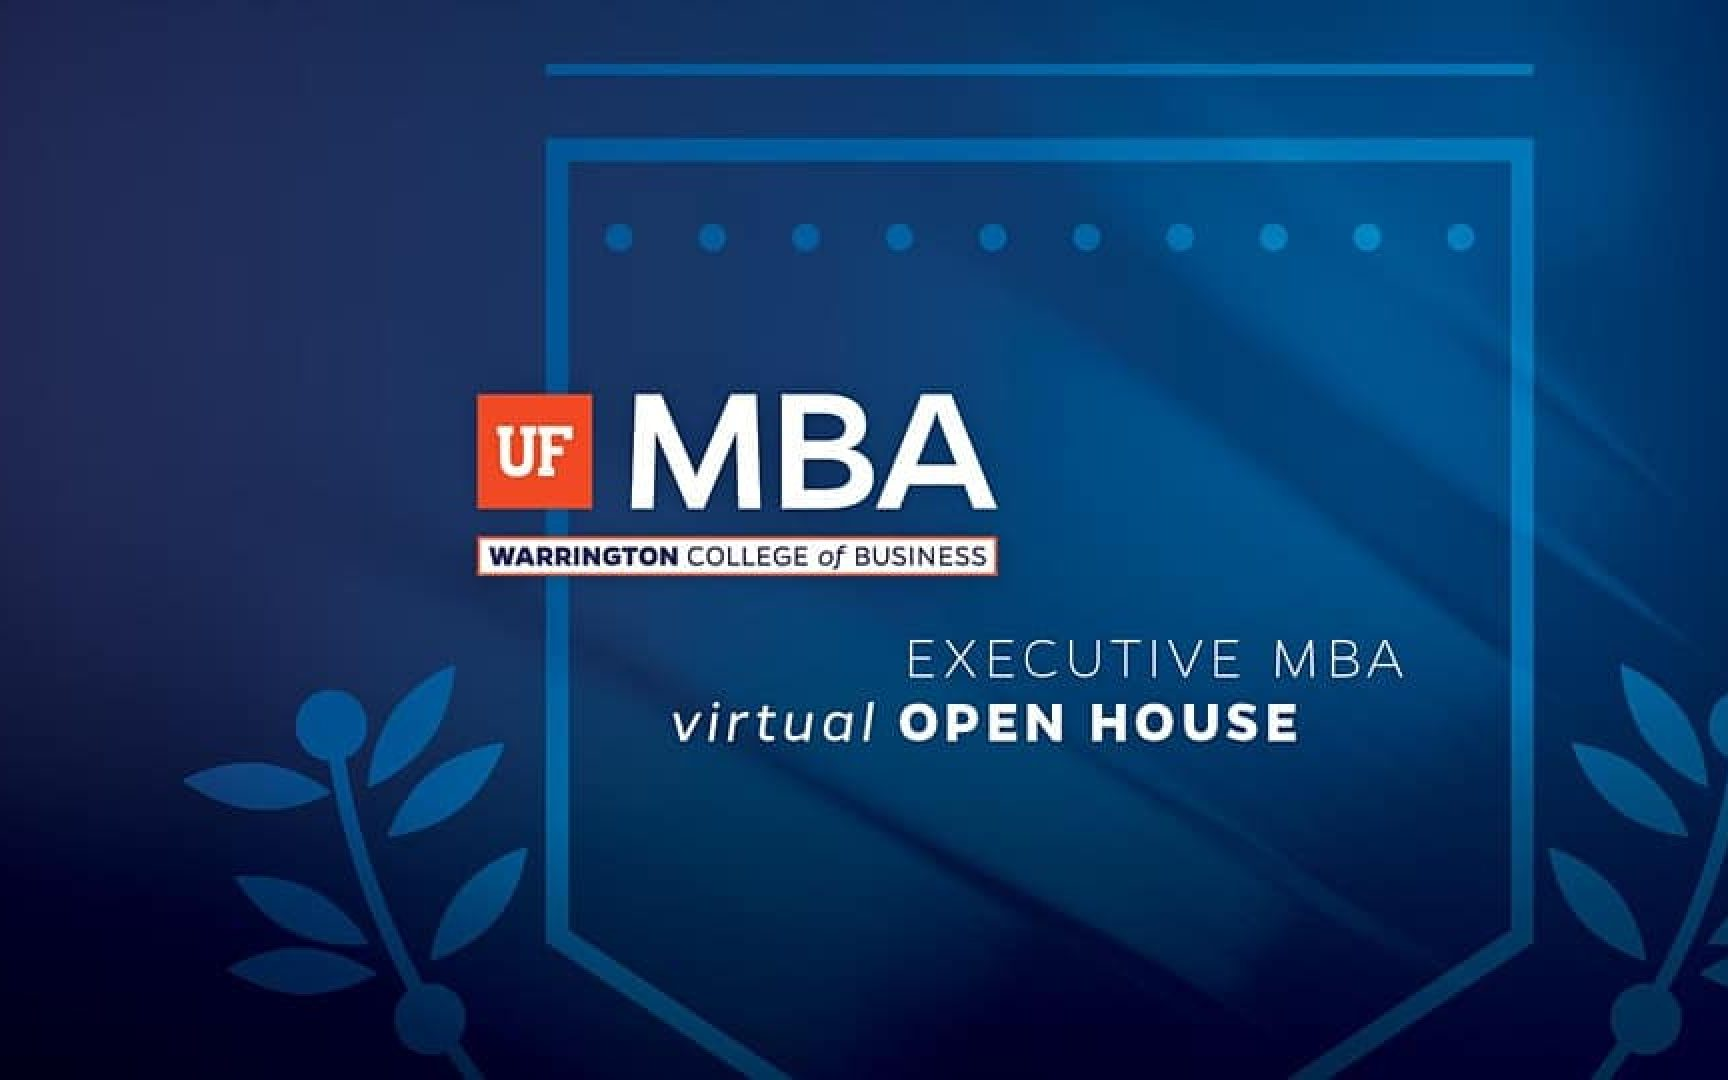 Designed image with the UF MBA logo and the words Executive MBA Virtual Open House